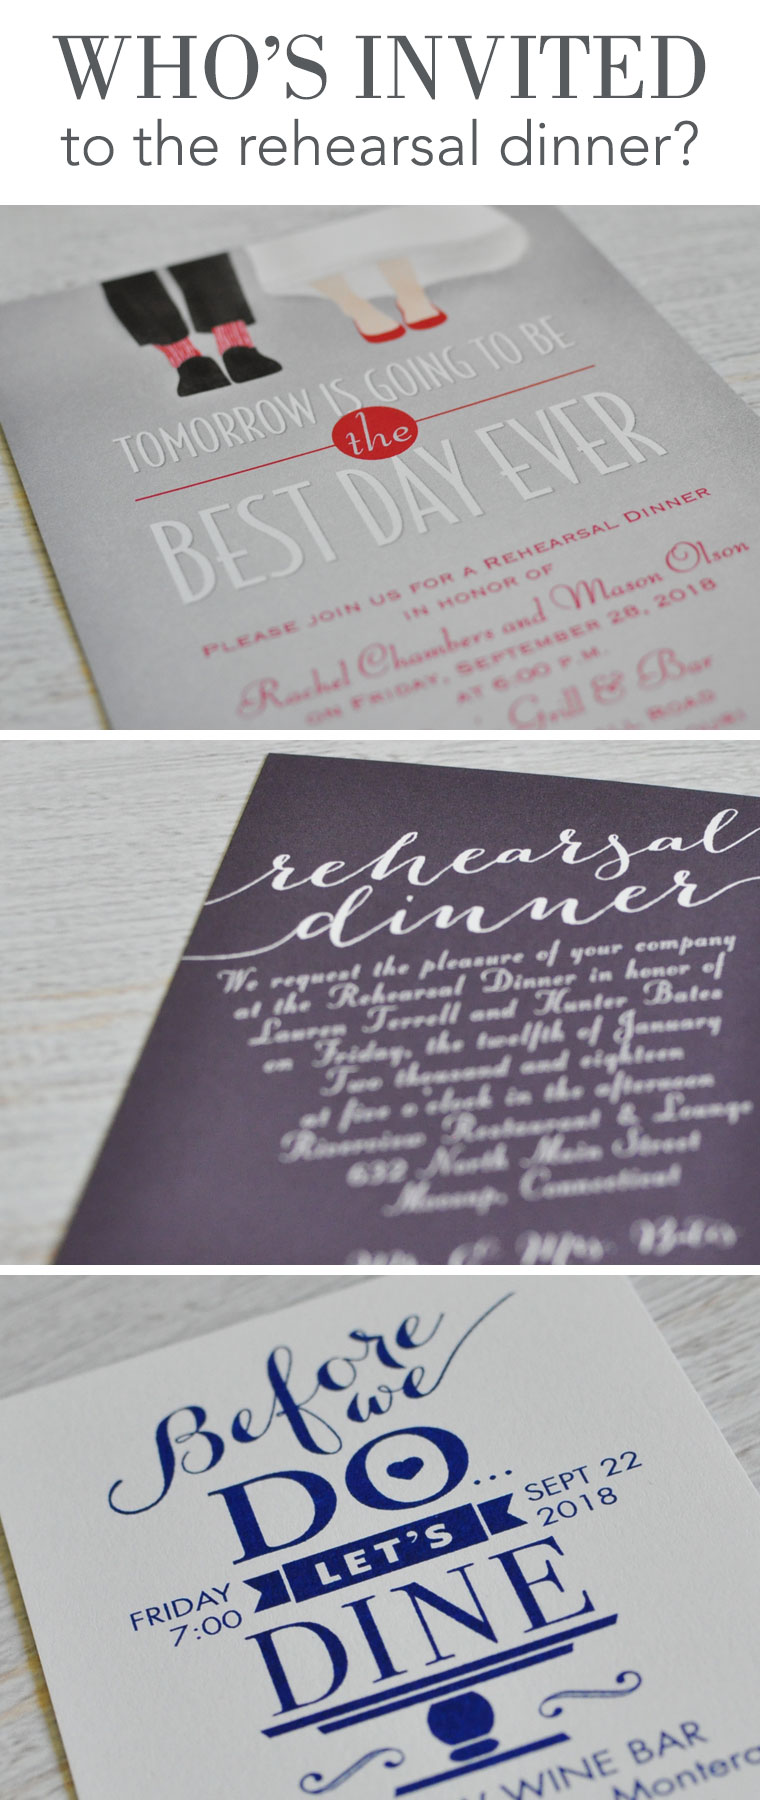 Who's invited to the rehearsal dinner?